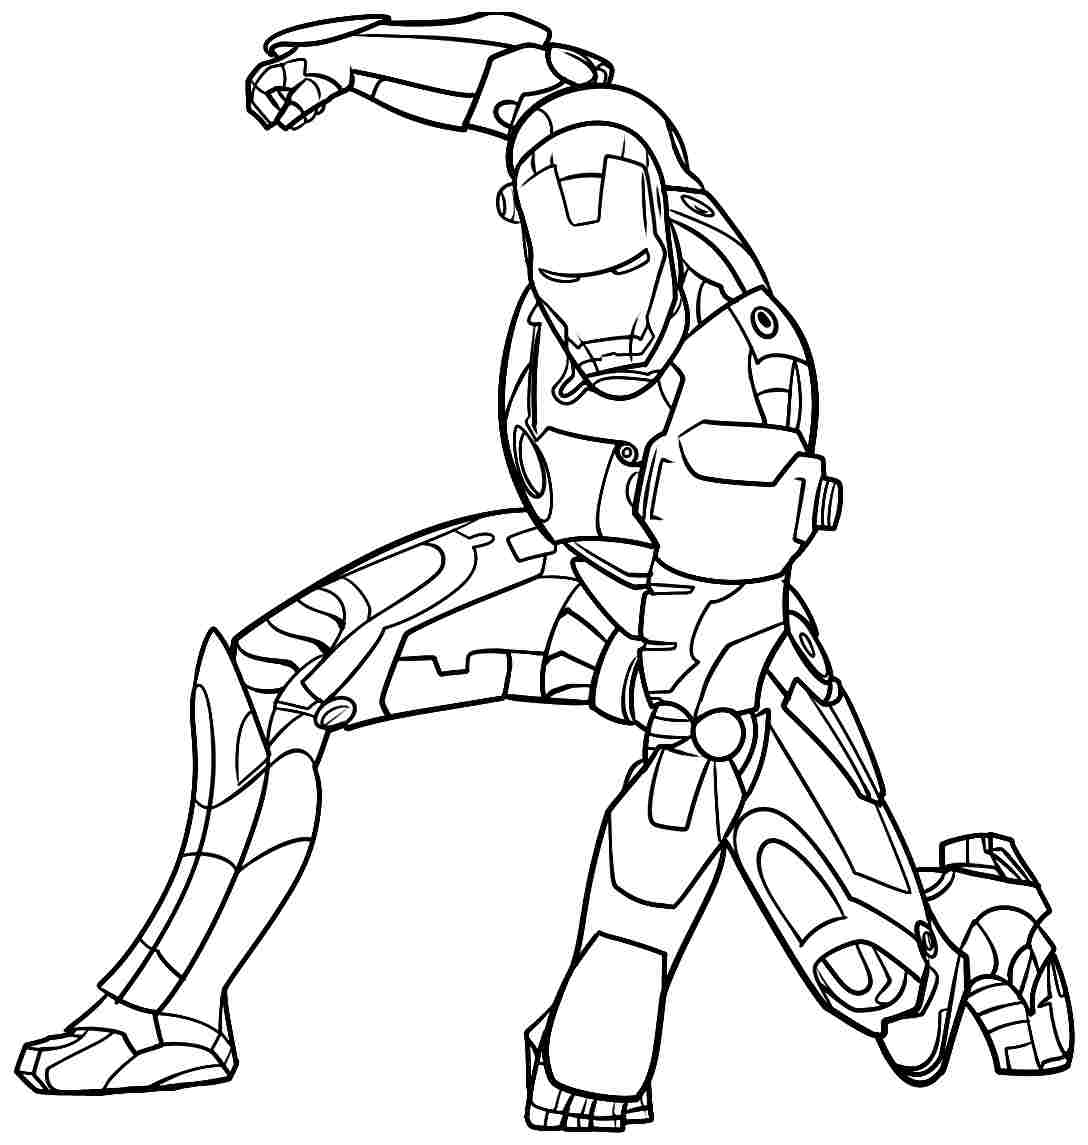 iron man outline iron man outline drawing at getdrawings free download iron outline man